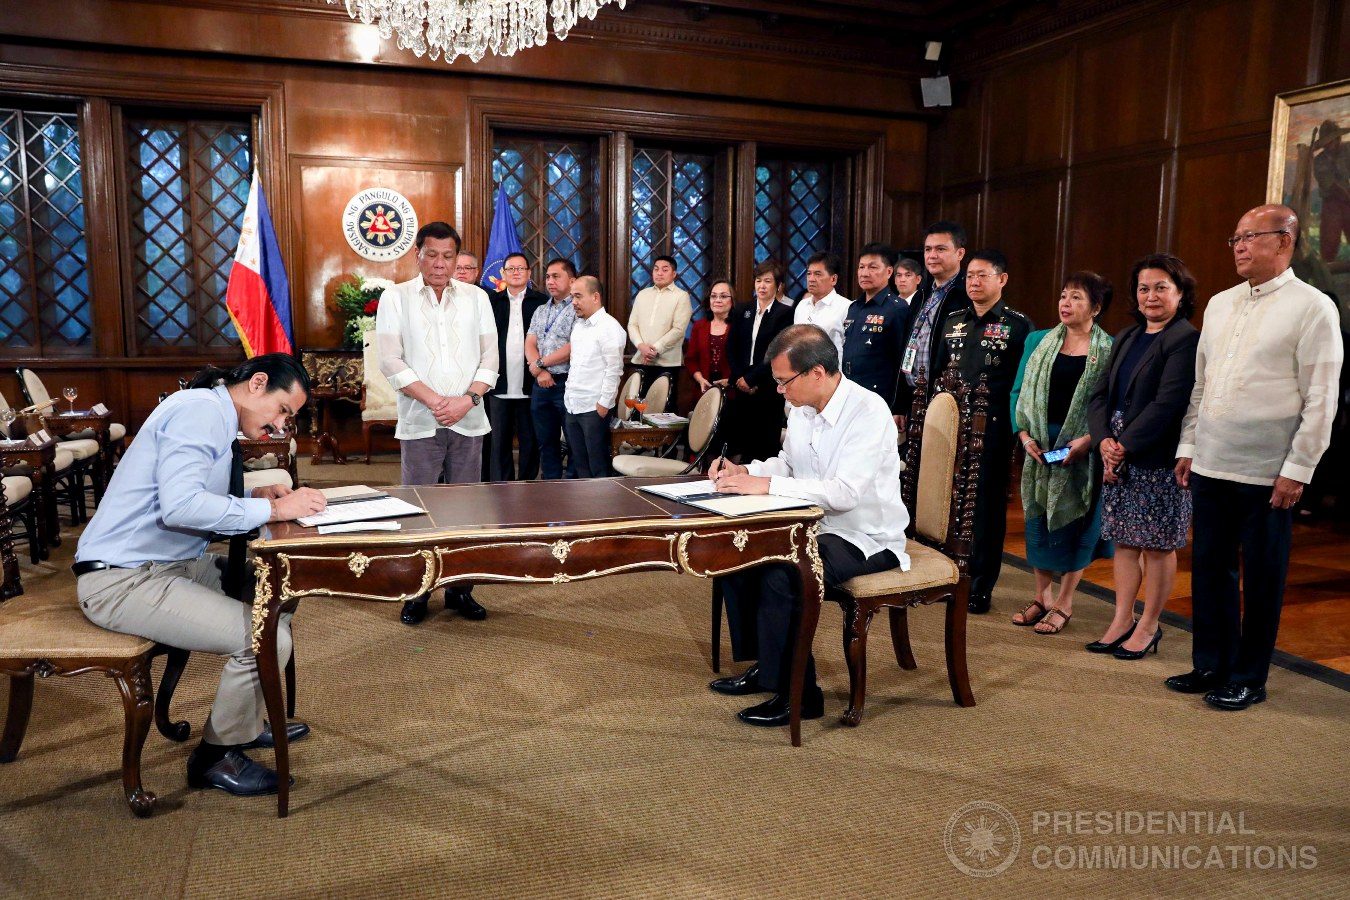 President Rodrigo Roa Duterte witnesses the signing of the deed of donation between actor Robin Padilla and Social Welfare Undersecretary Emmanuel Leyco in Malacañan Palace on August 16, 2017. The P5-million donation is intended for the immediate psychosocial intervention for the children affected by the armed conflict in Marawi City. Joining Padilla are Fisheries Development Authority general manager Atty. Glen A. Pangapalan, Frabelle Foods Corp. President Francisco Tiu Laurel Jr., and Rommel C. Padilla. Meanwhile, accompanying the recipient are National Defense Secretary Delfin Lorenzana, Trade Secretary Ramon Lopez, DSWD ASec. Rodolfo Santos, and Armed Forces of the Philippines chief-of-staff General Eduardo M. Año, among others. (ROBINSON NIÑAL JR./PRESIDENTIAL PHOTO)